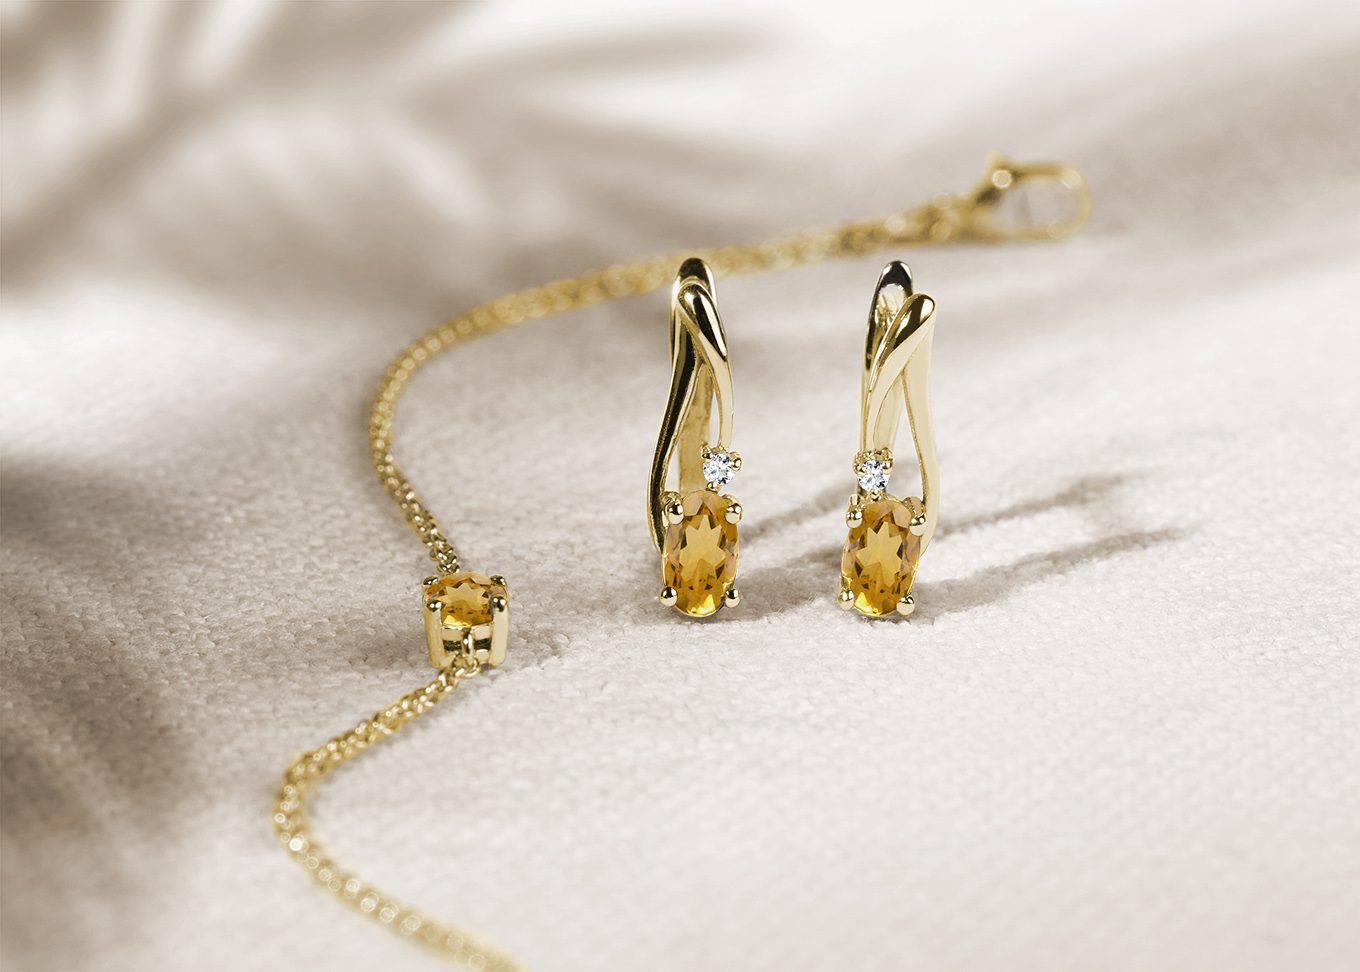 Citrine jewelry from 14k gold in yellow gold